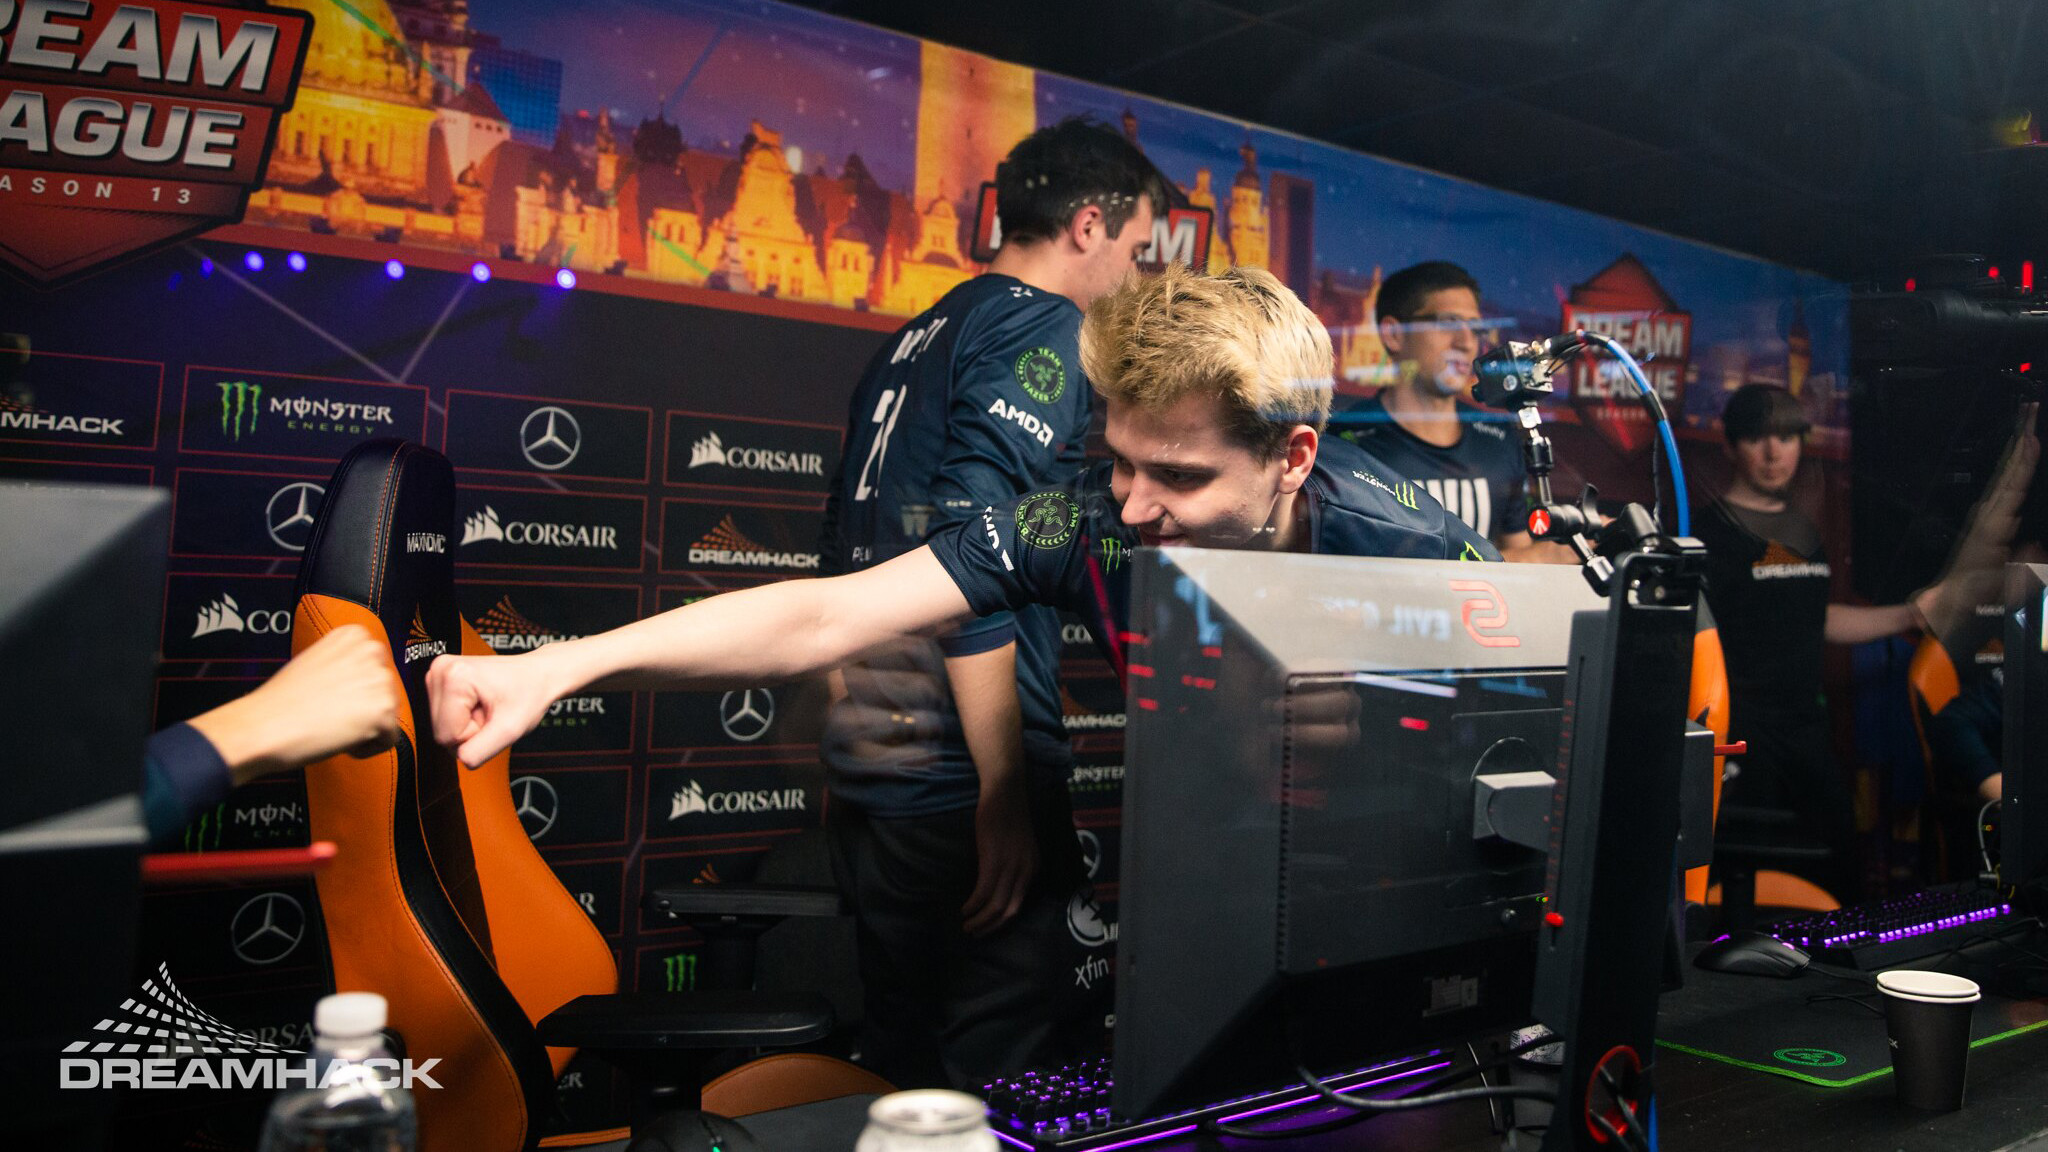 EG's journey continues: more than a top 3 finish at the Major?